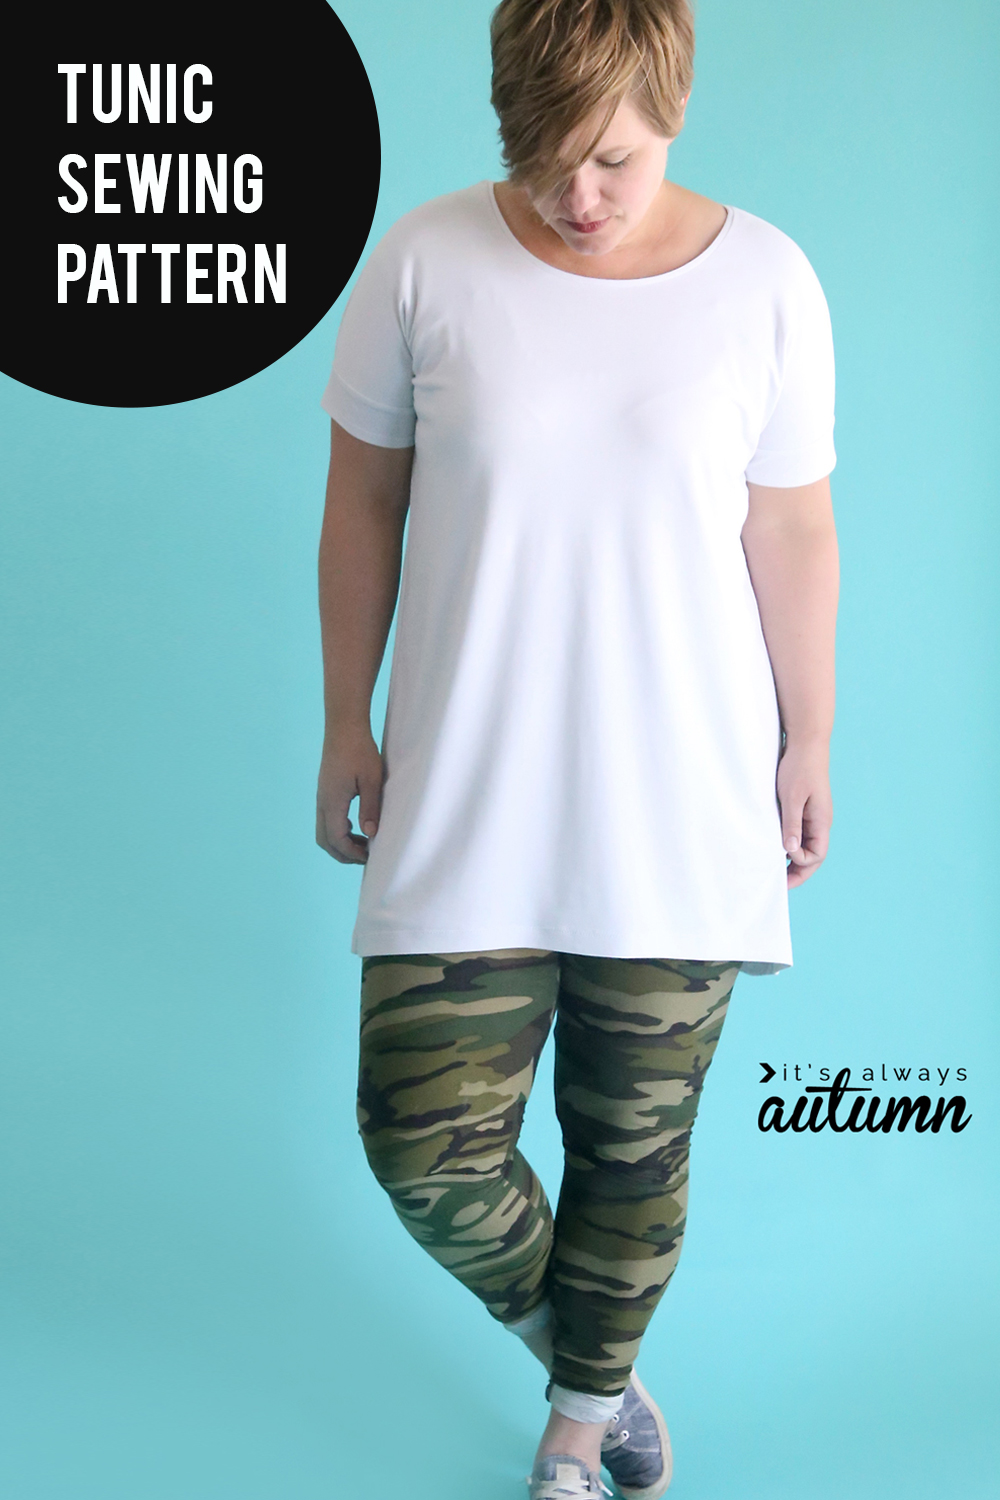 Learn how to sew a long shirt to wear with leggings with this tunic sewing pattern and tutorial.